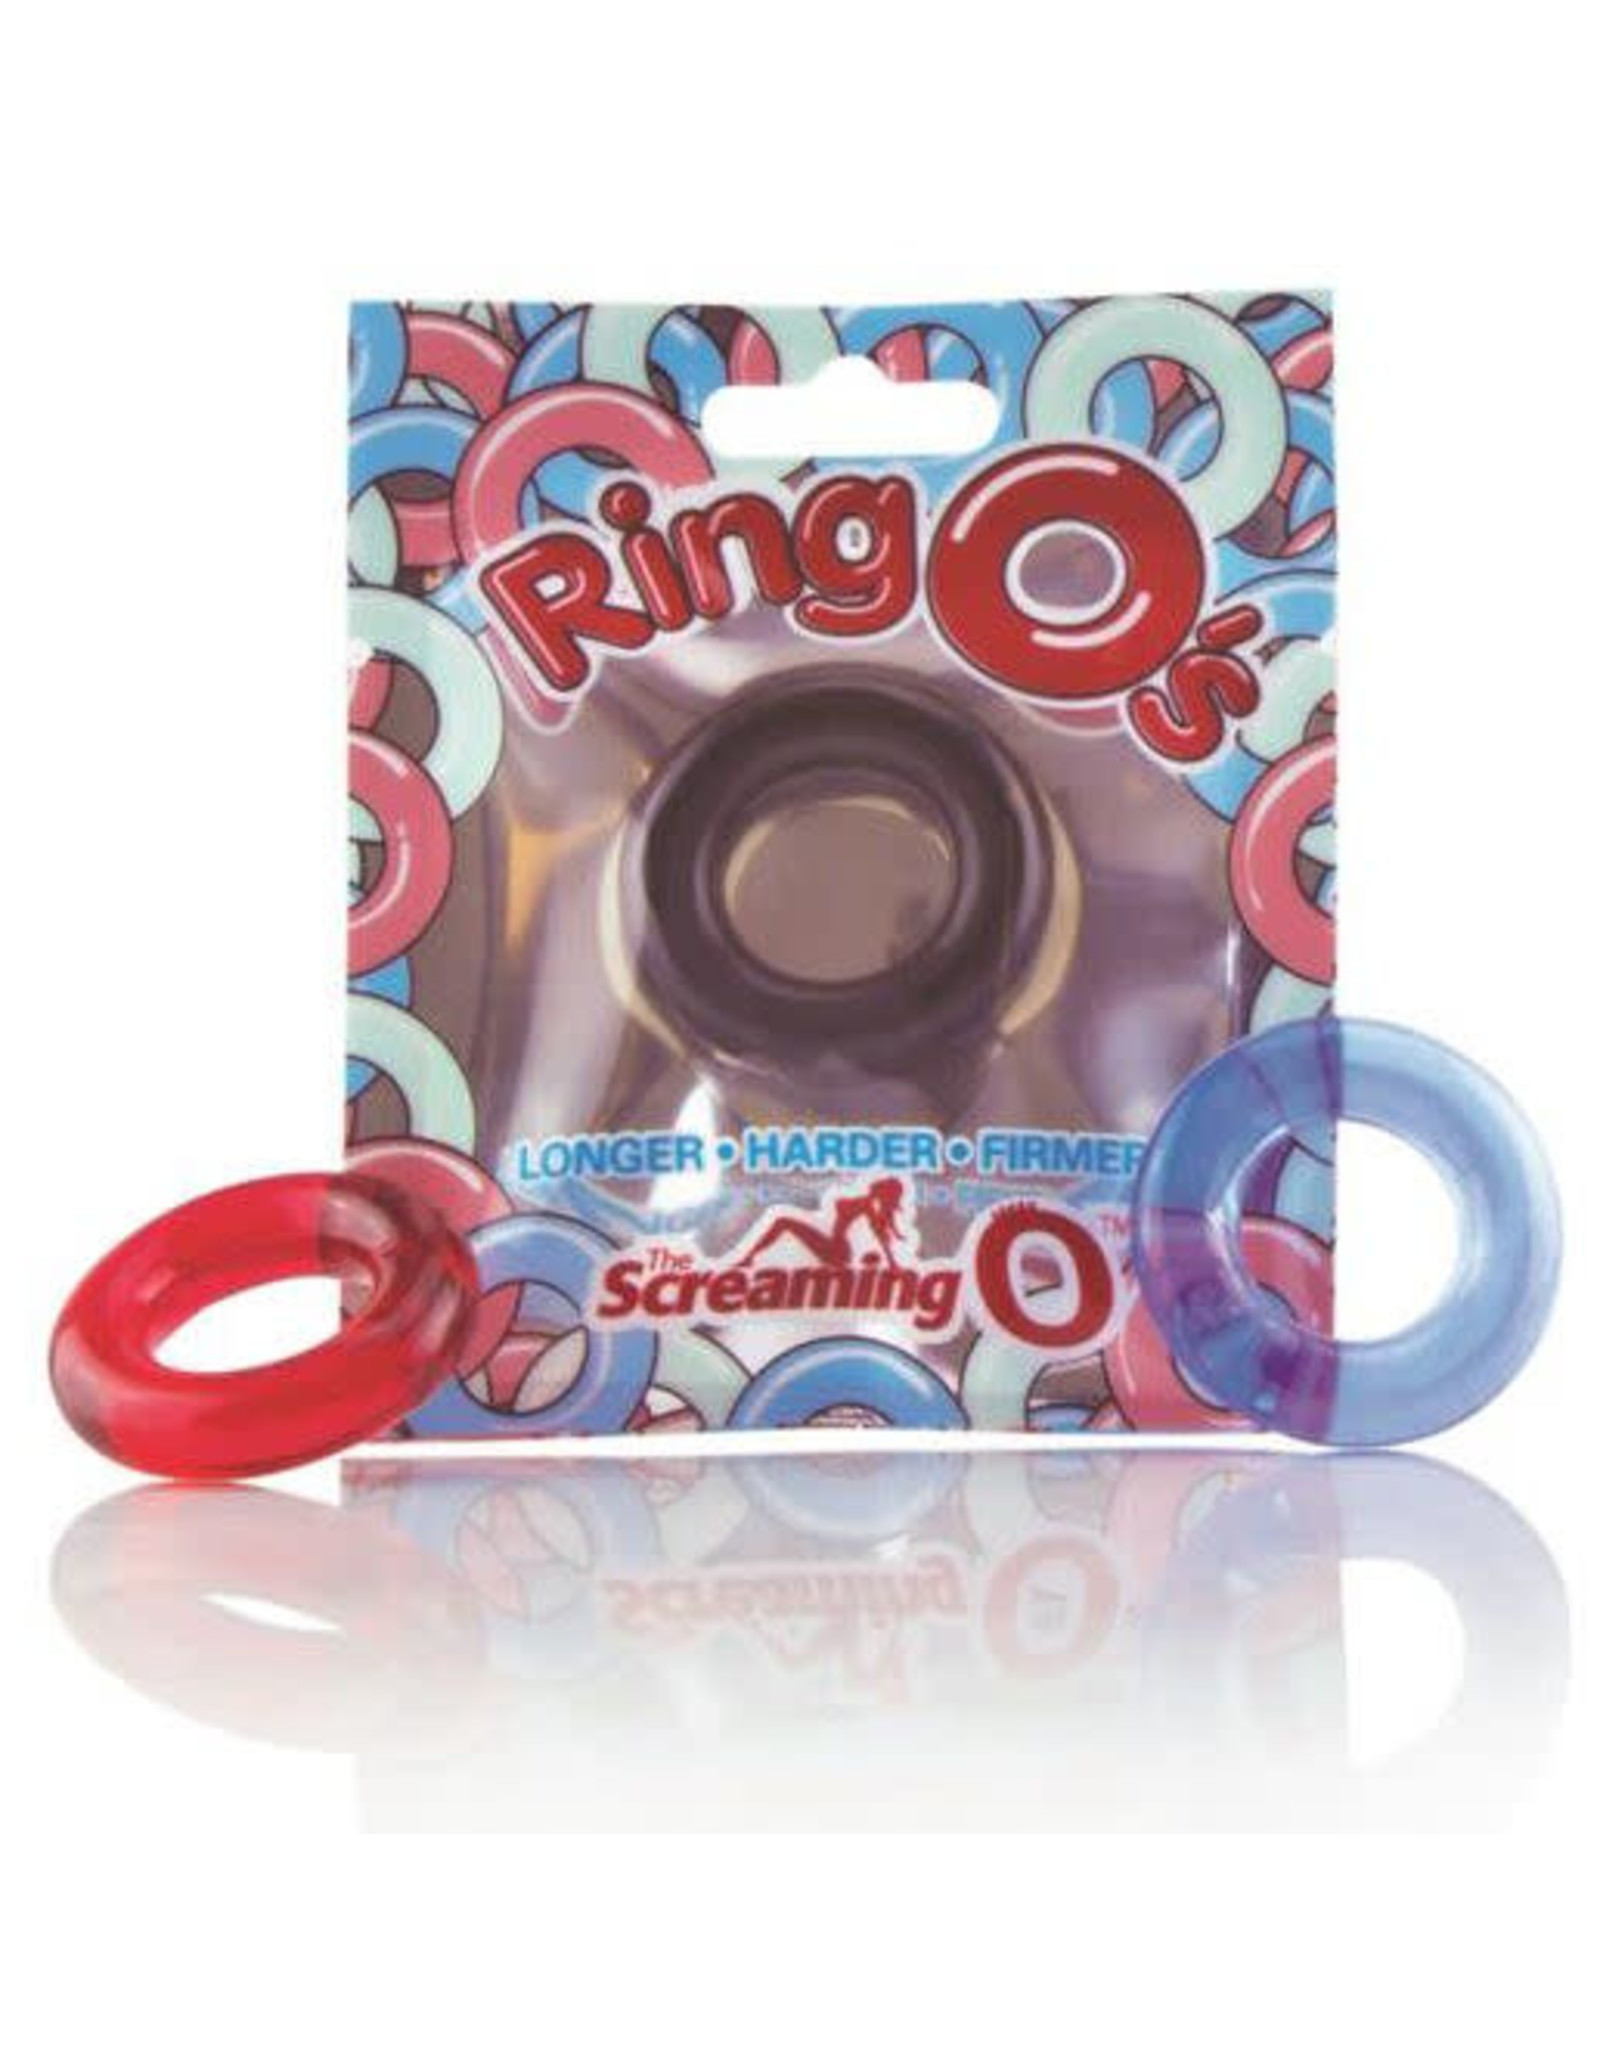 SCREAMING'O - RING'O - BLACK